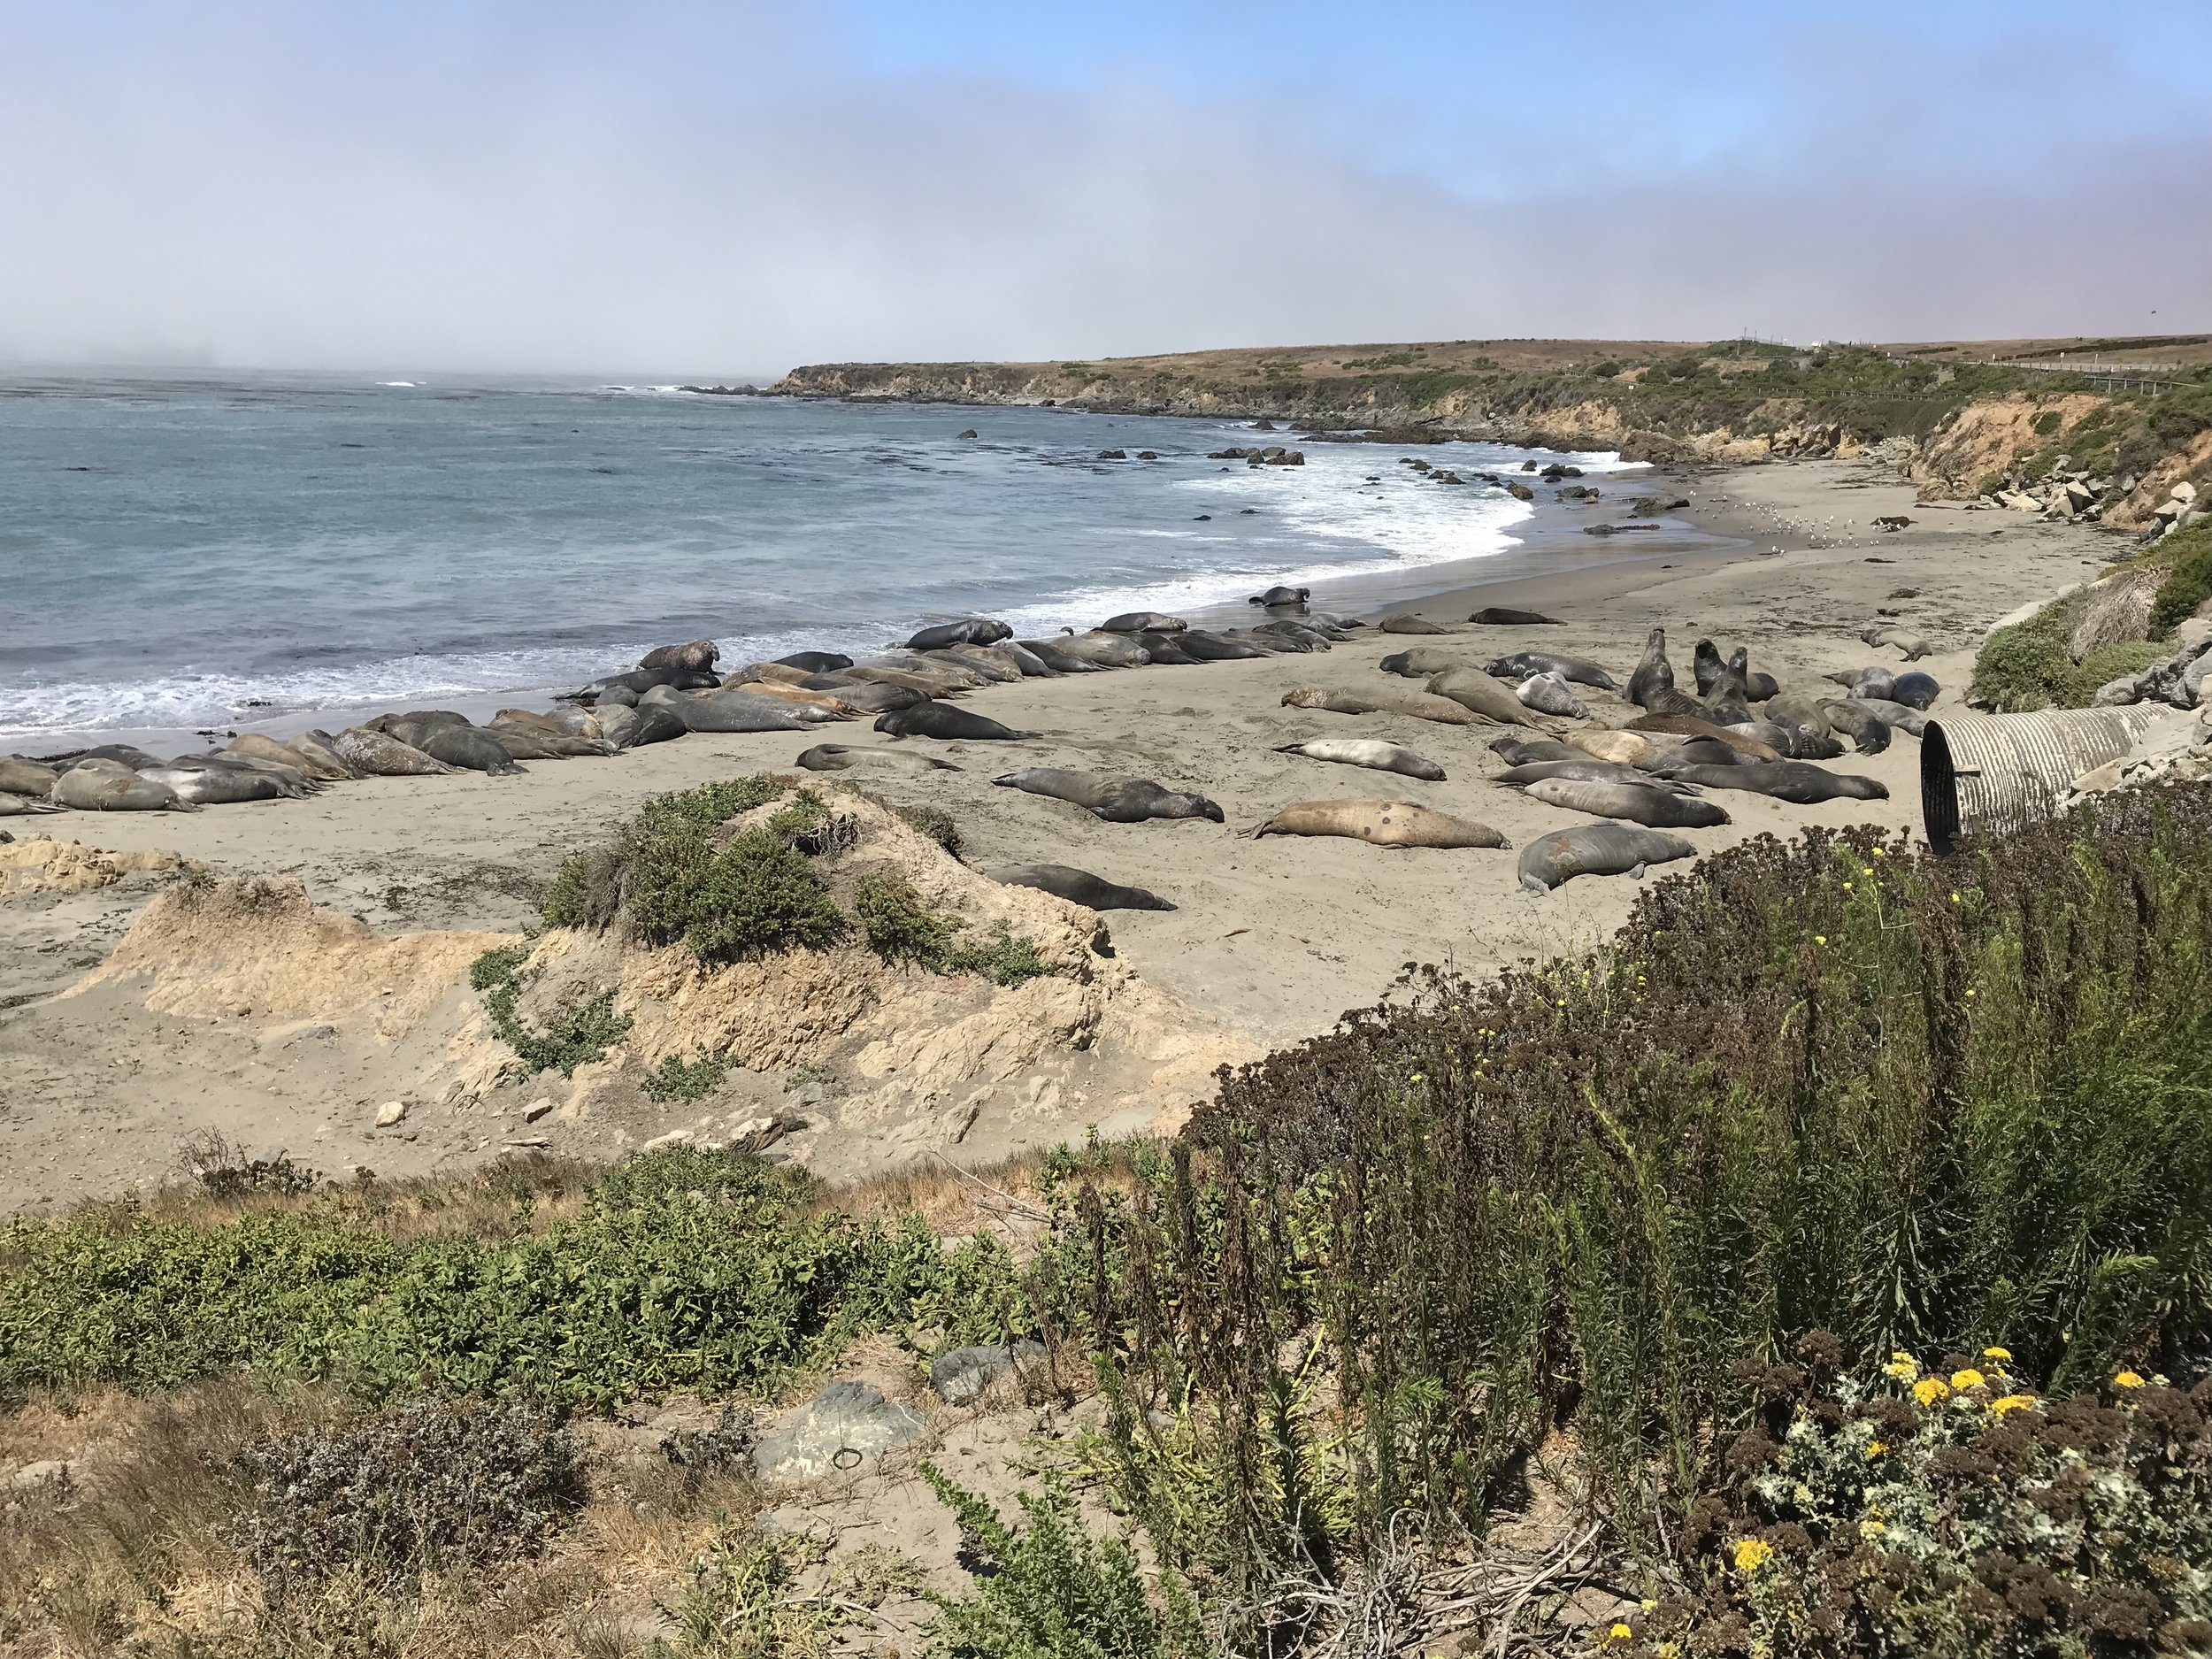 We stopped at San Simeon to see elephant seals! This colony only formed in the 1990's and now has over 15,000 seals in it. For an animal almost hunted to extinction, pretty amazing to see.